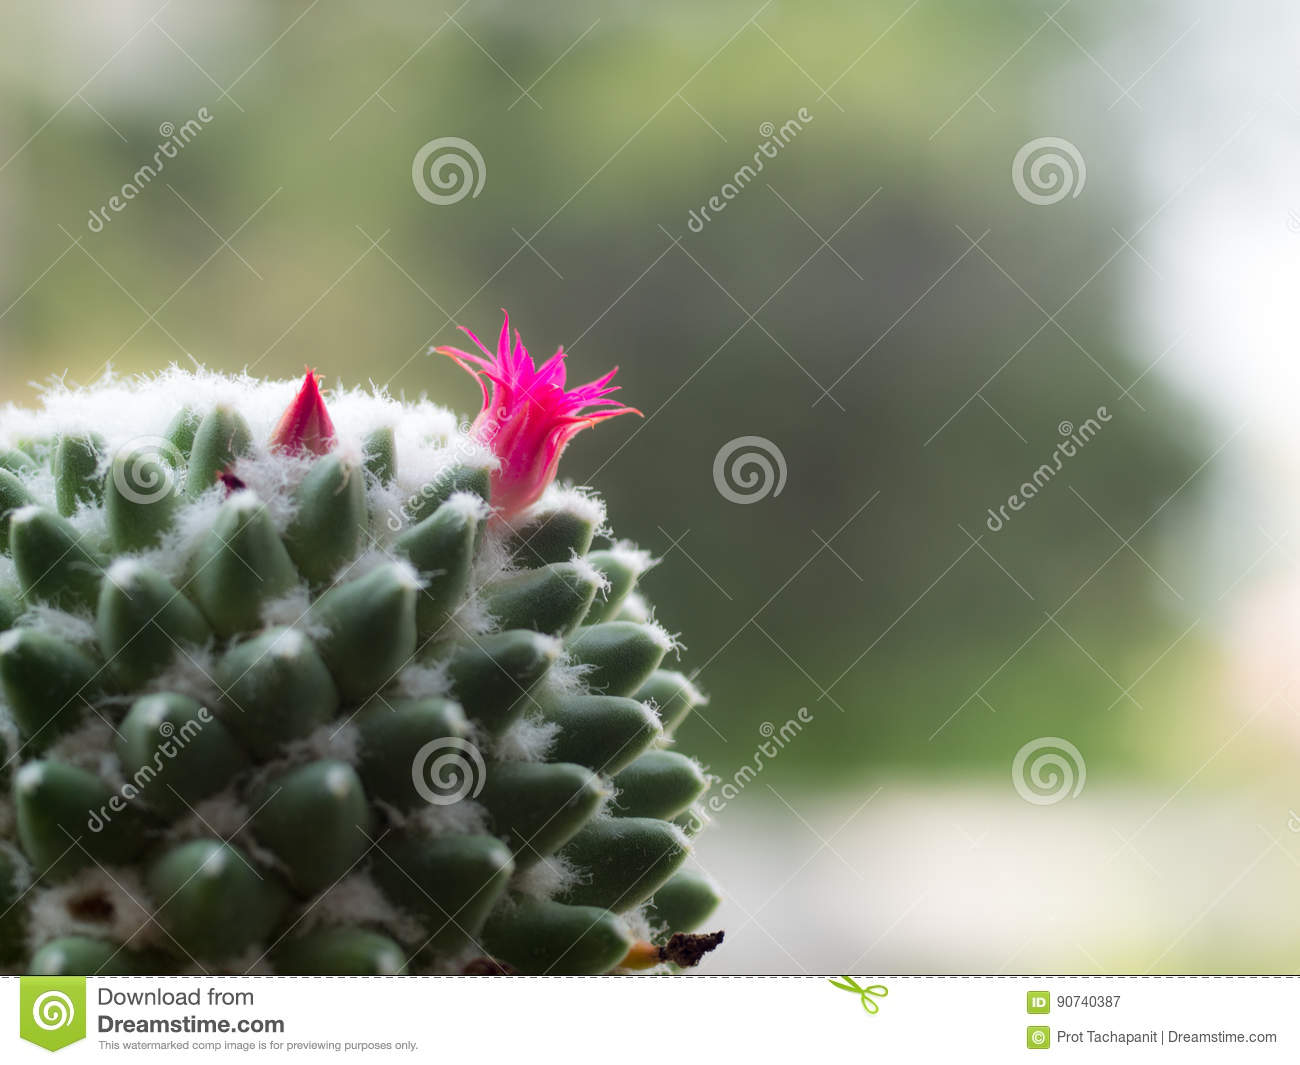 The Flowers Of The Pink Cactus Are On The Tree Stock Image Image